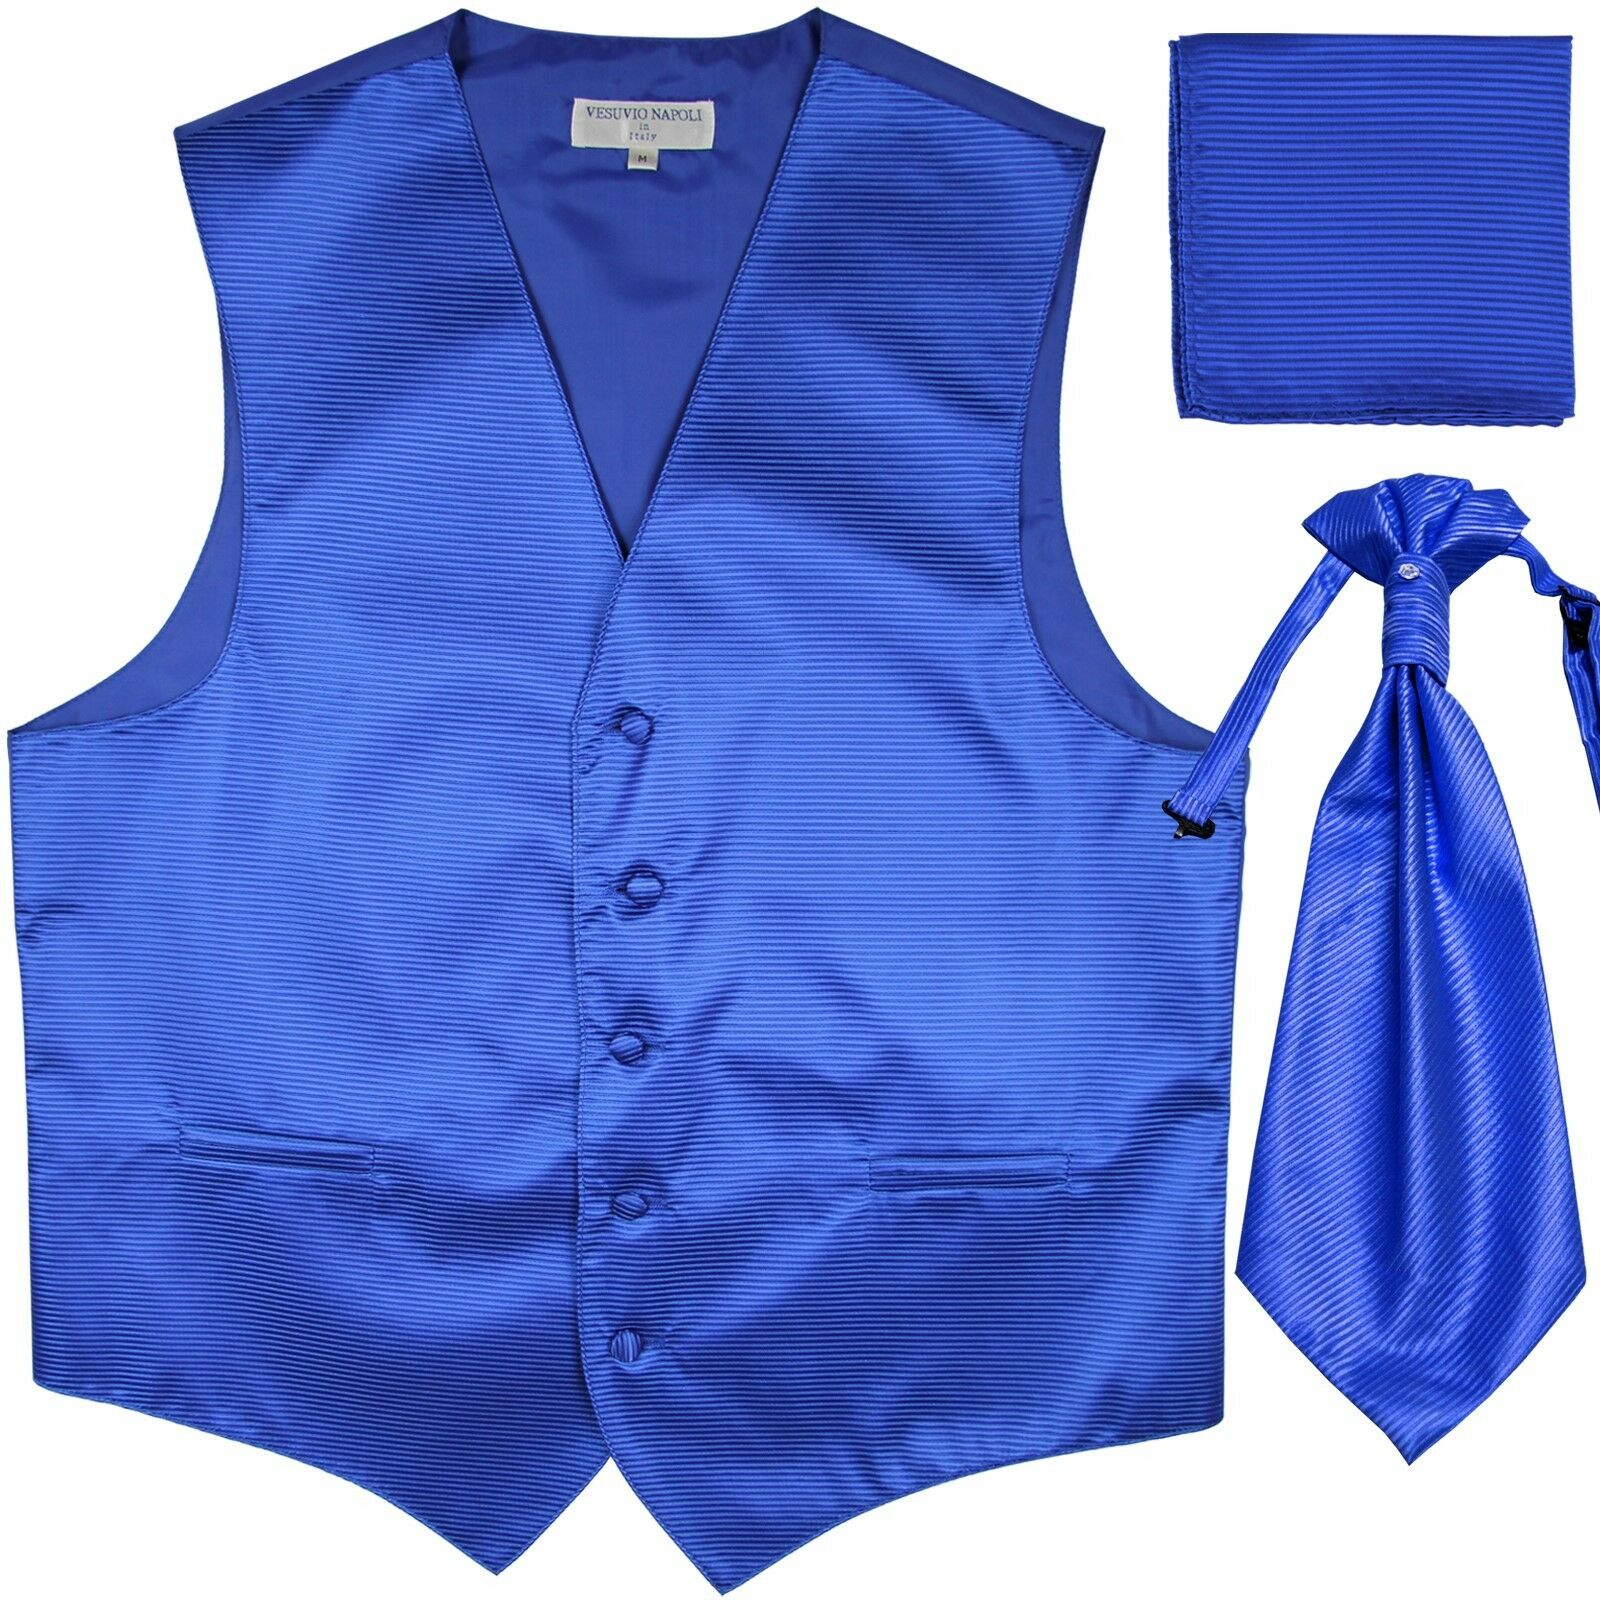 New Men's Horizontal Stripes Tuxedo Vest Waistcoat & Ascot set Royal bluee formal